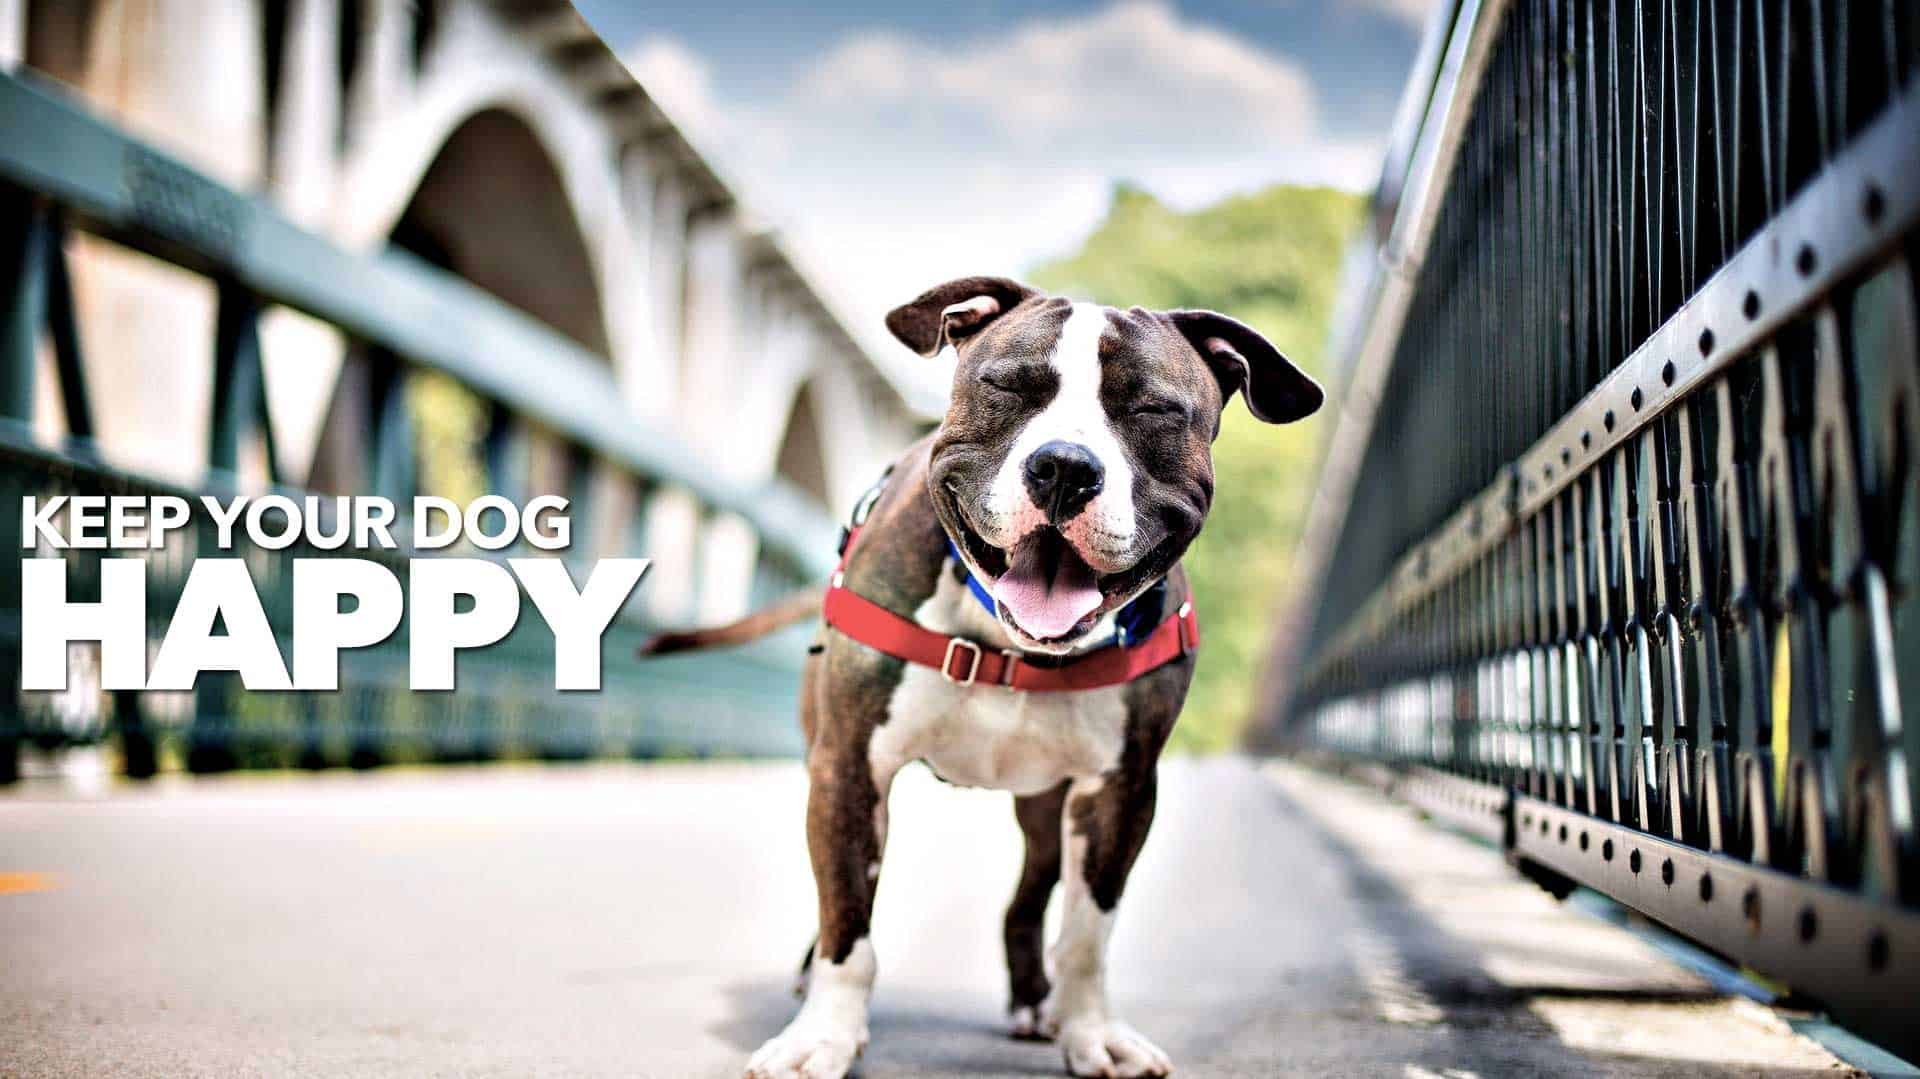 keep your dog happy